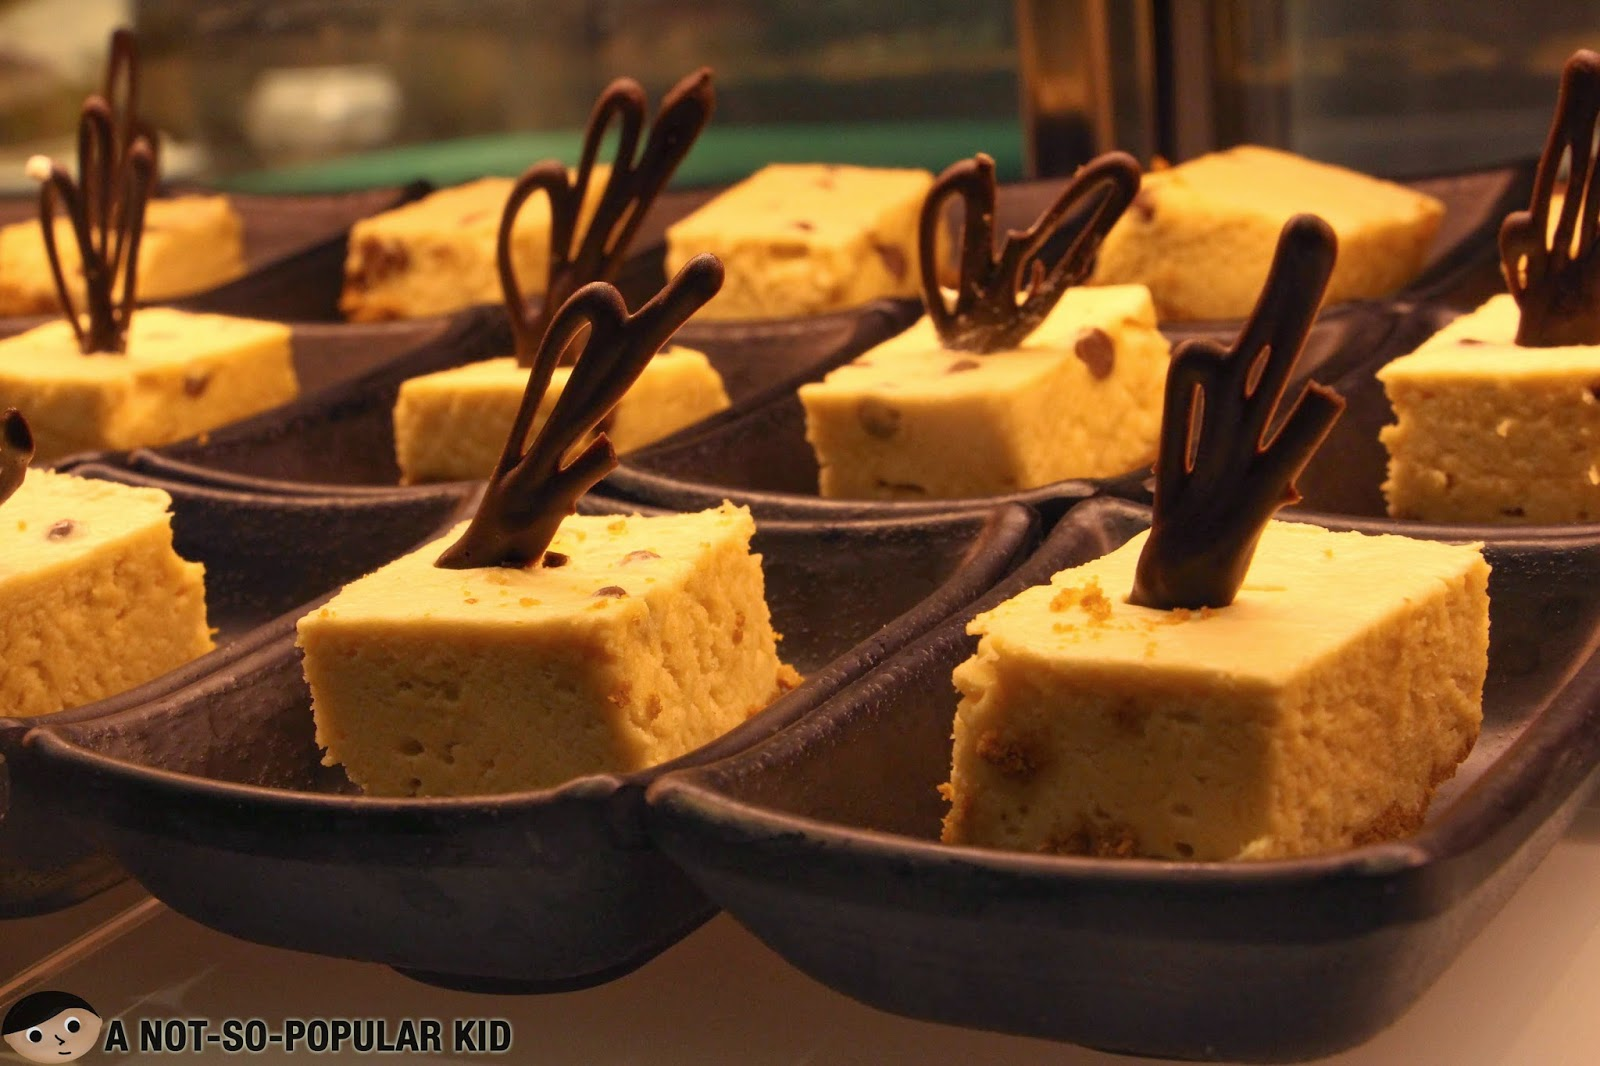 Chocolate Peanut Butter Desserts in Vikings